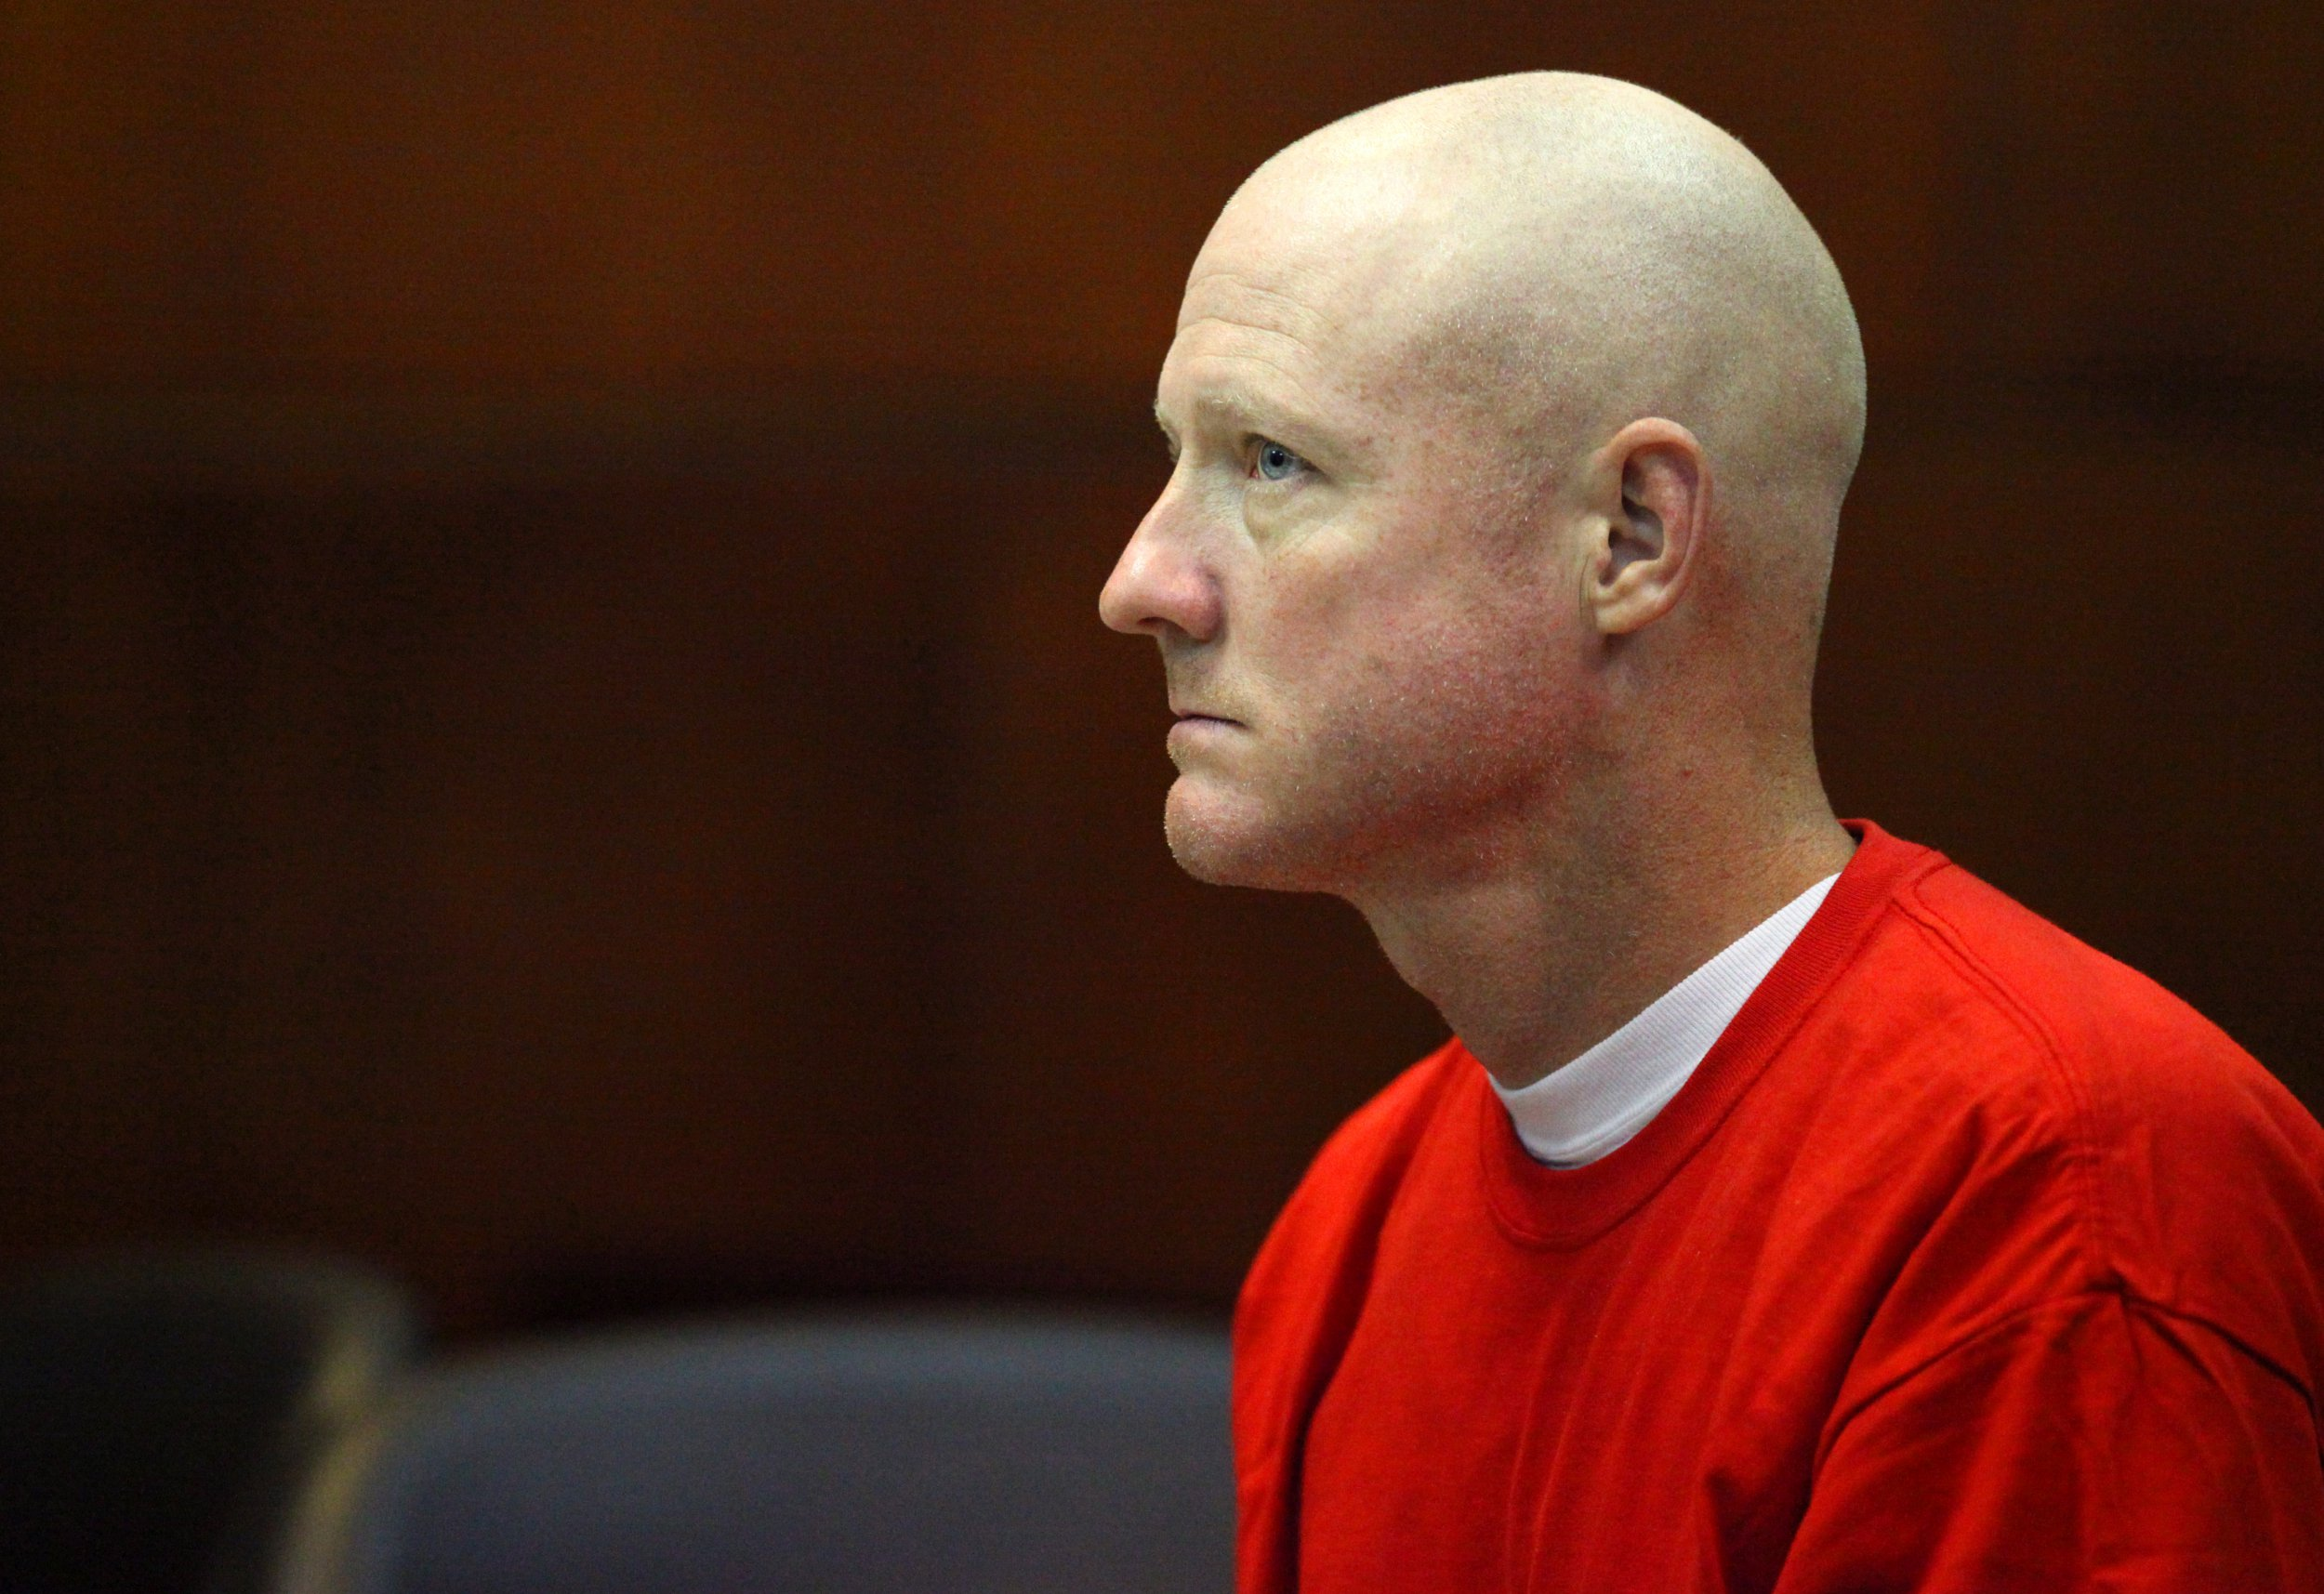 Justin Mertis Barber appears before circuit Judge Patti Christensen at the St. Johns County Courthouse on Friday, May 4, 2012. Barber, who is seeking a new trial, was found guilty in 2006 of murdering his wife on the beach at Guana River State Park. (AP Photo/The St. Augustine Record, Daron Dean) TV OUT; MAGS OUT